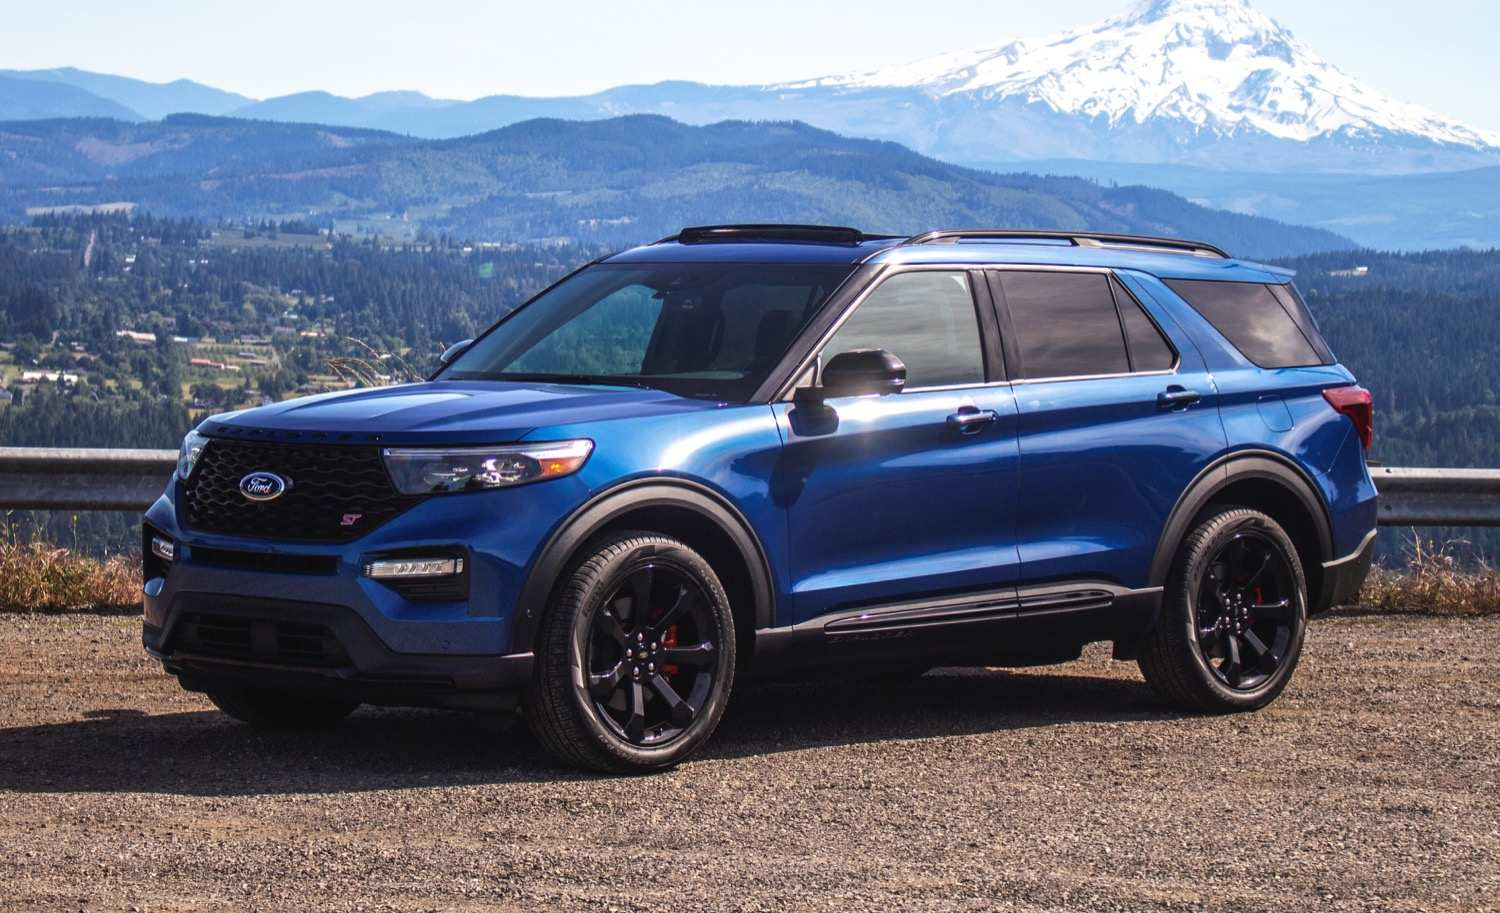 73 All New Ford Explorer 2020 Release Date Specs and Review by Ford Explorer 2020 Release Date